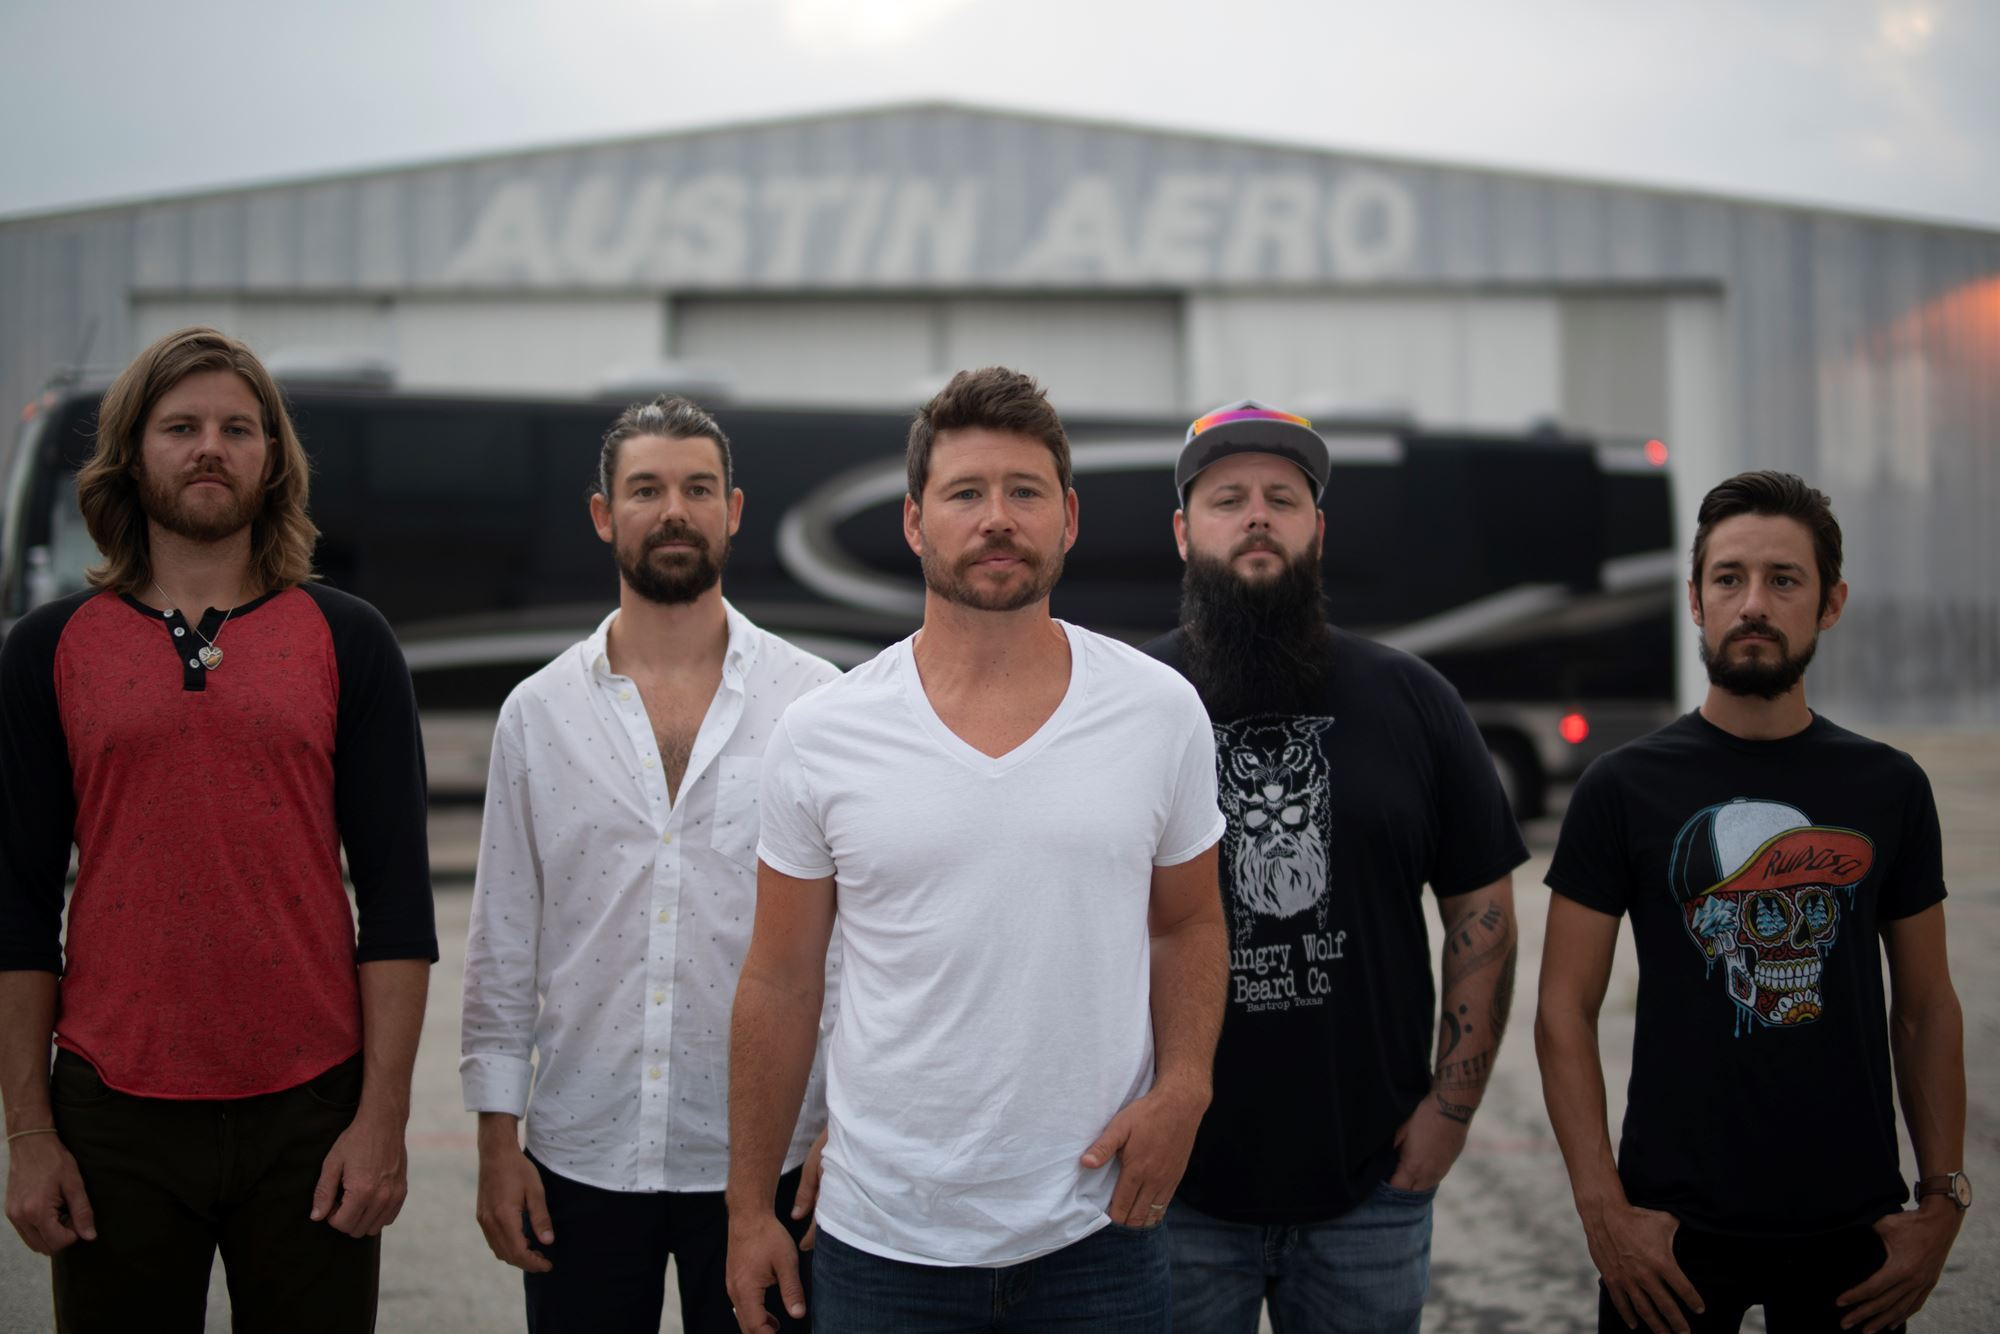 PRCA Rodeo w/ <br>Shane Smith & The Saints<br> Monday, Feb. 22 at 7 PM